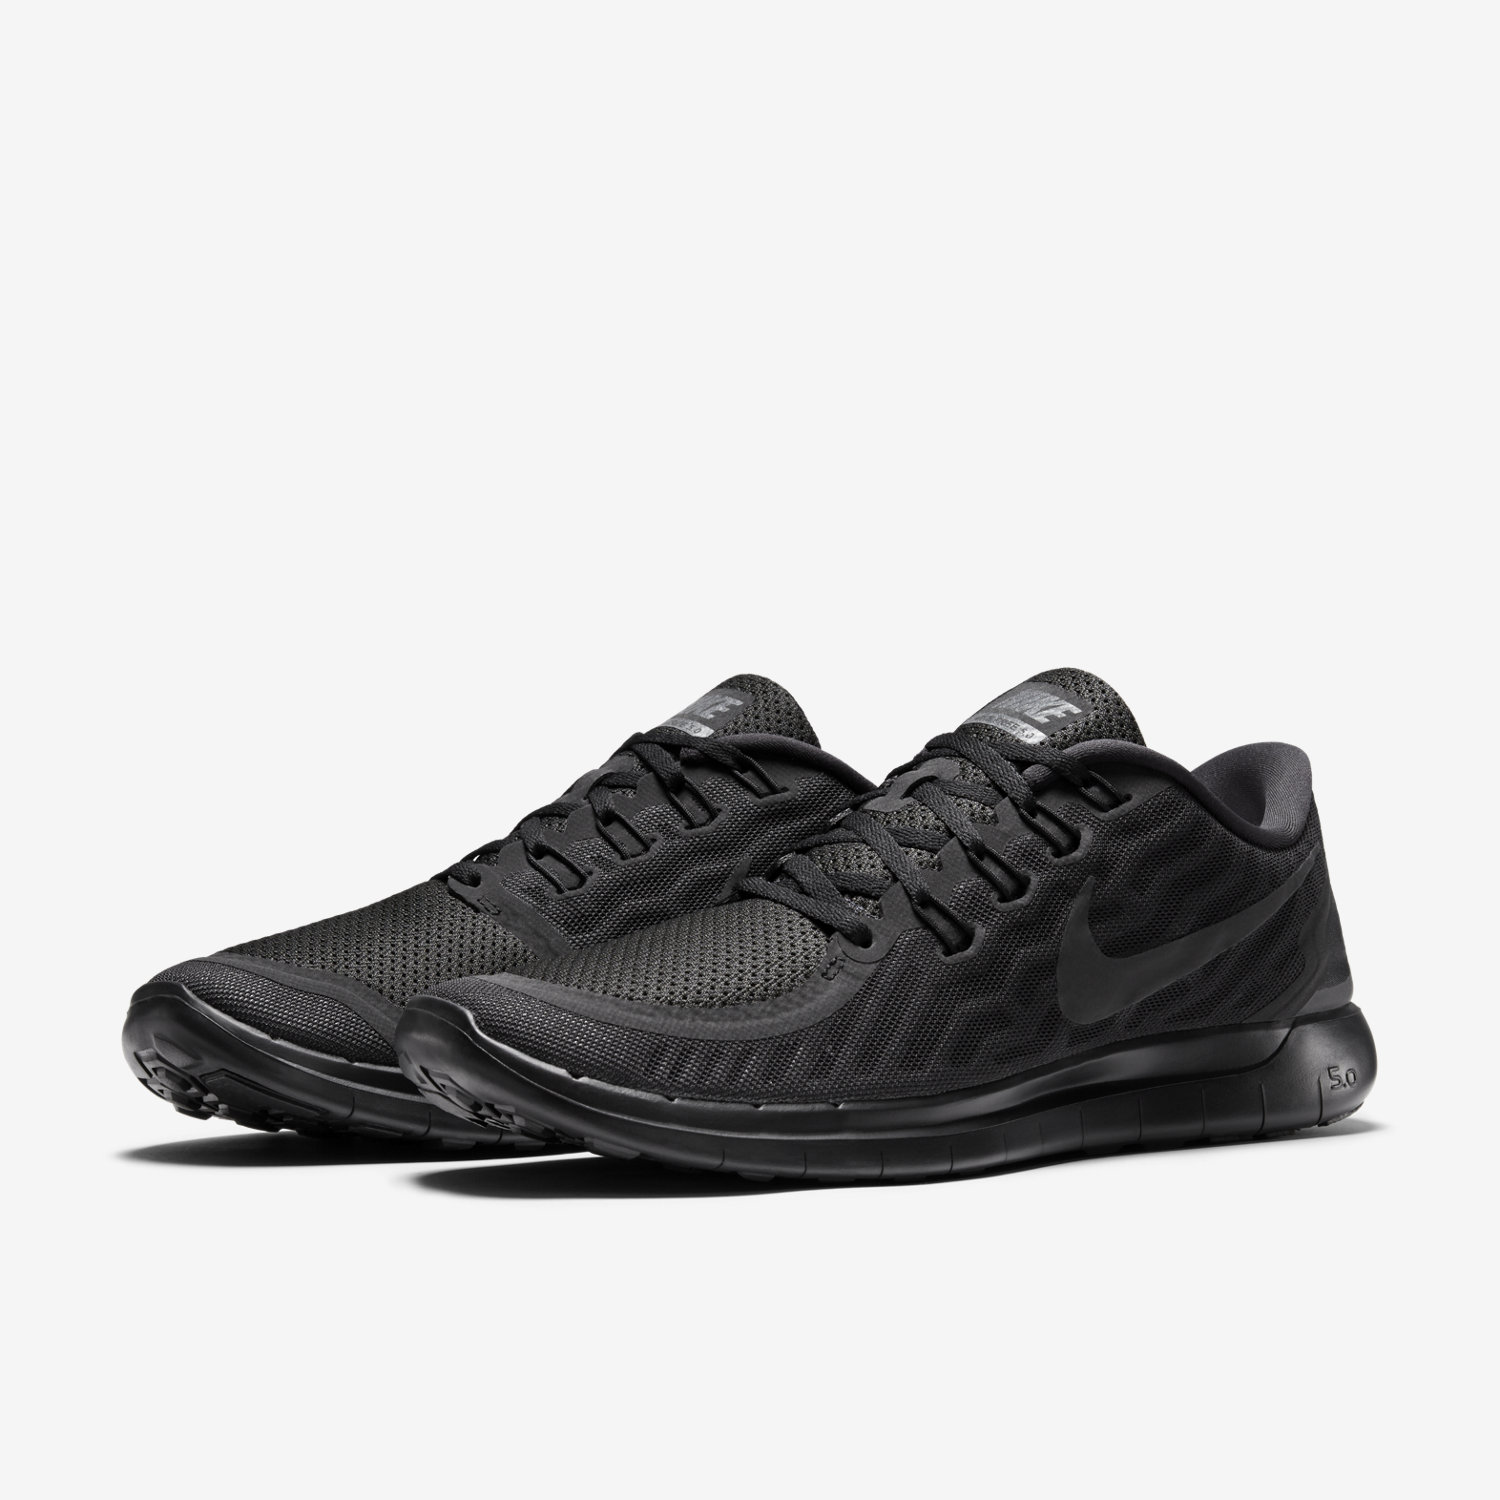 737373888b46 Shop the NIKE FREE 5.0 FLASH Black 685168-001 and very popular in New  Zealand. Find Wholesale Nike Running Shoes and more!